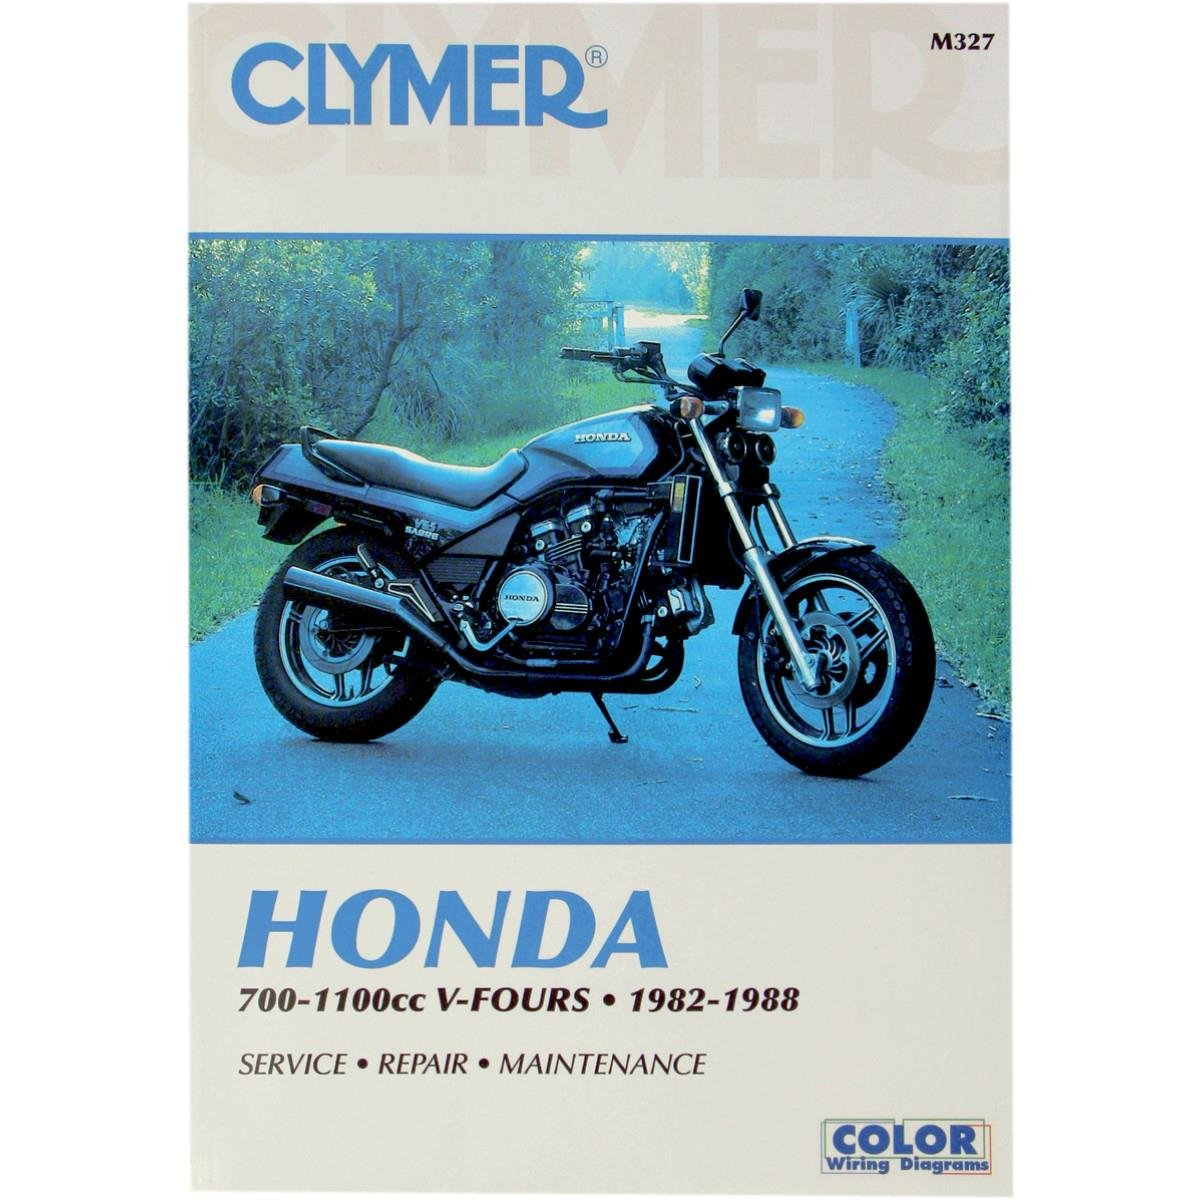 Amazon.com: 82-88 HONDA VF750C: Clymer Service Manual: Home Audio & Theater